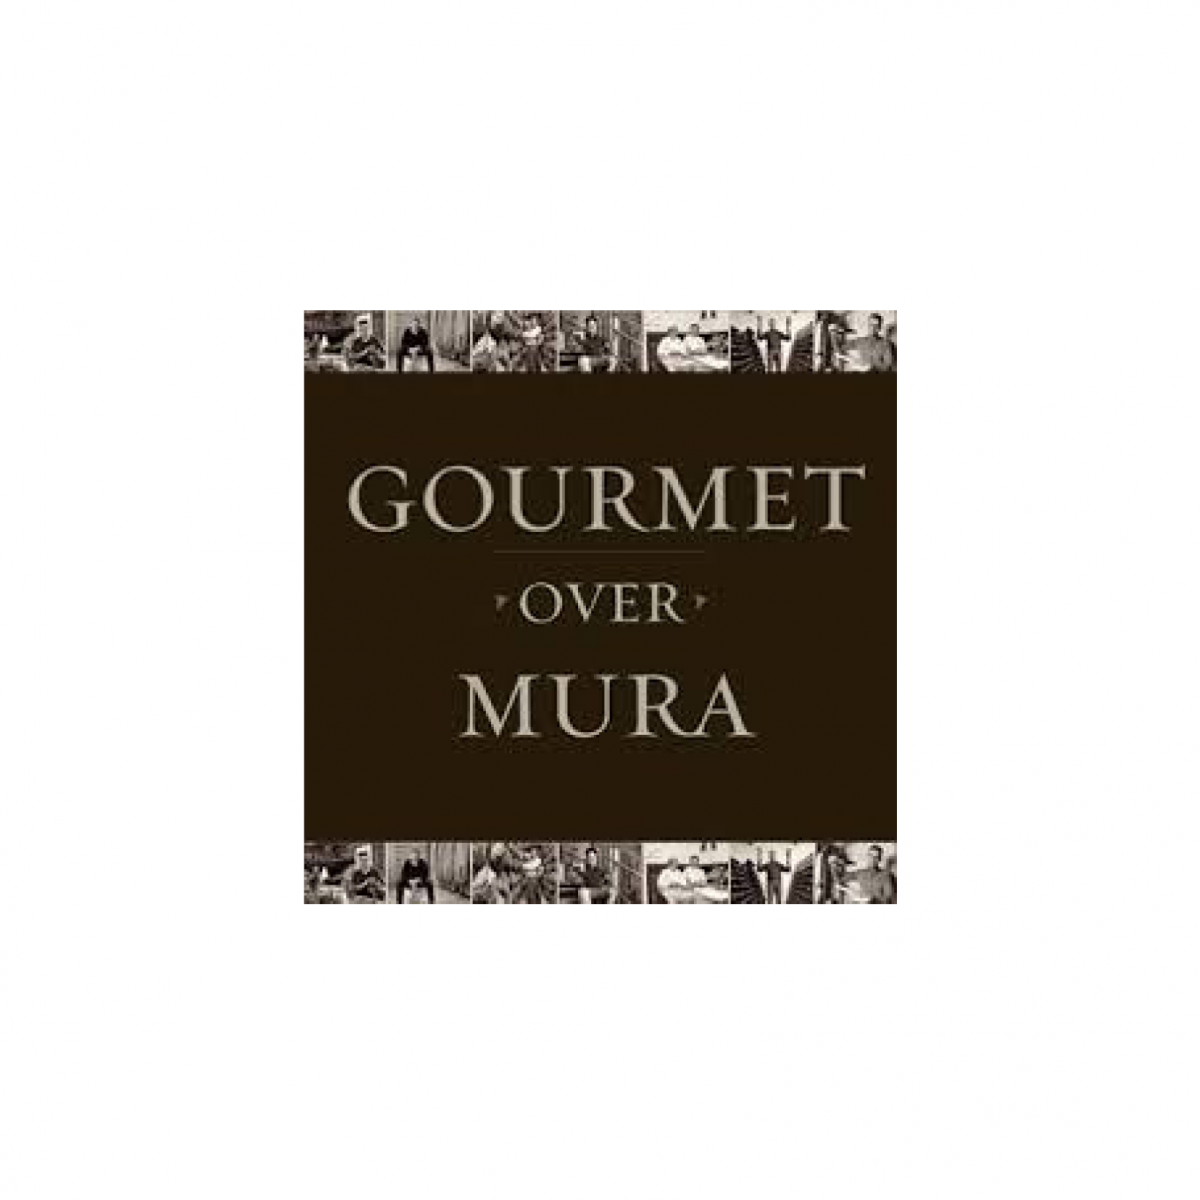 Gourmet over Mura